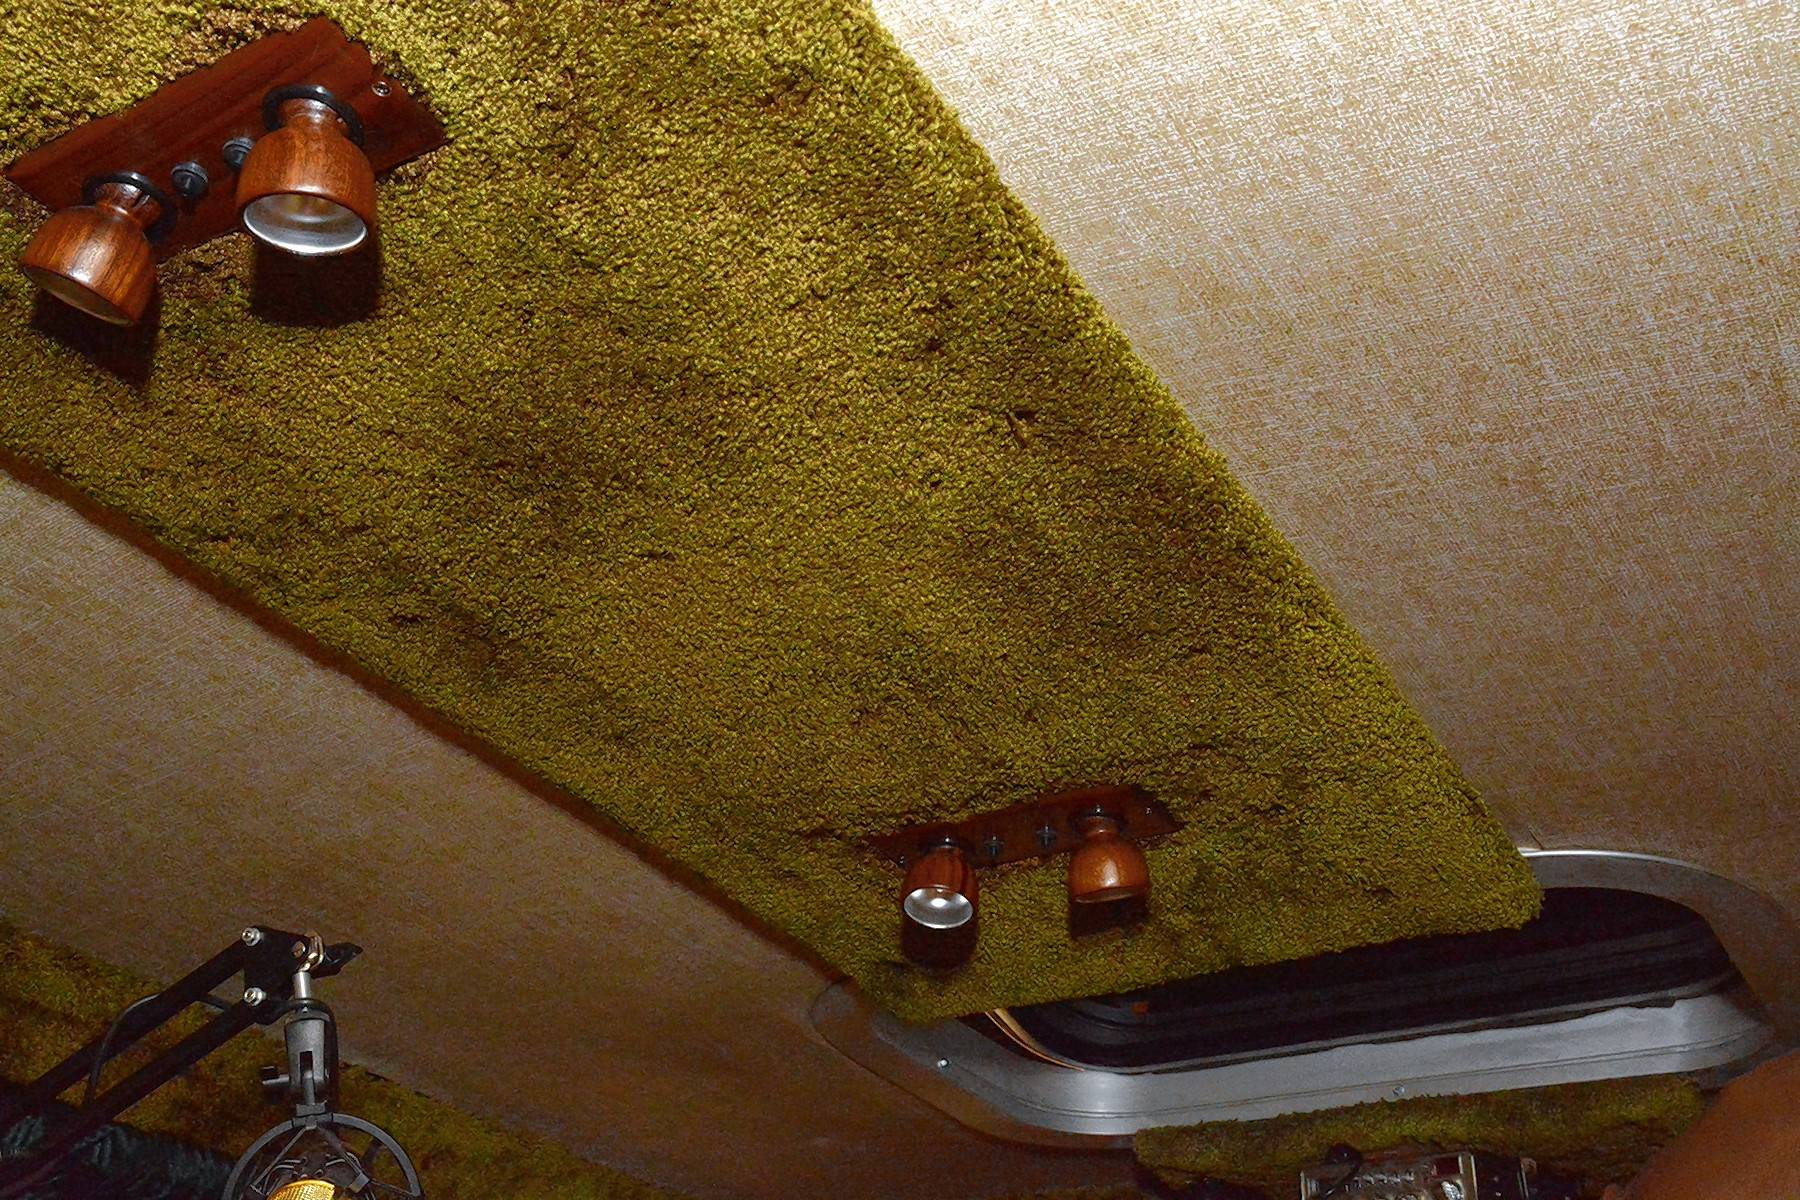 No 1977 Street Van would be complete without shag carpeting on the ceiling.